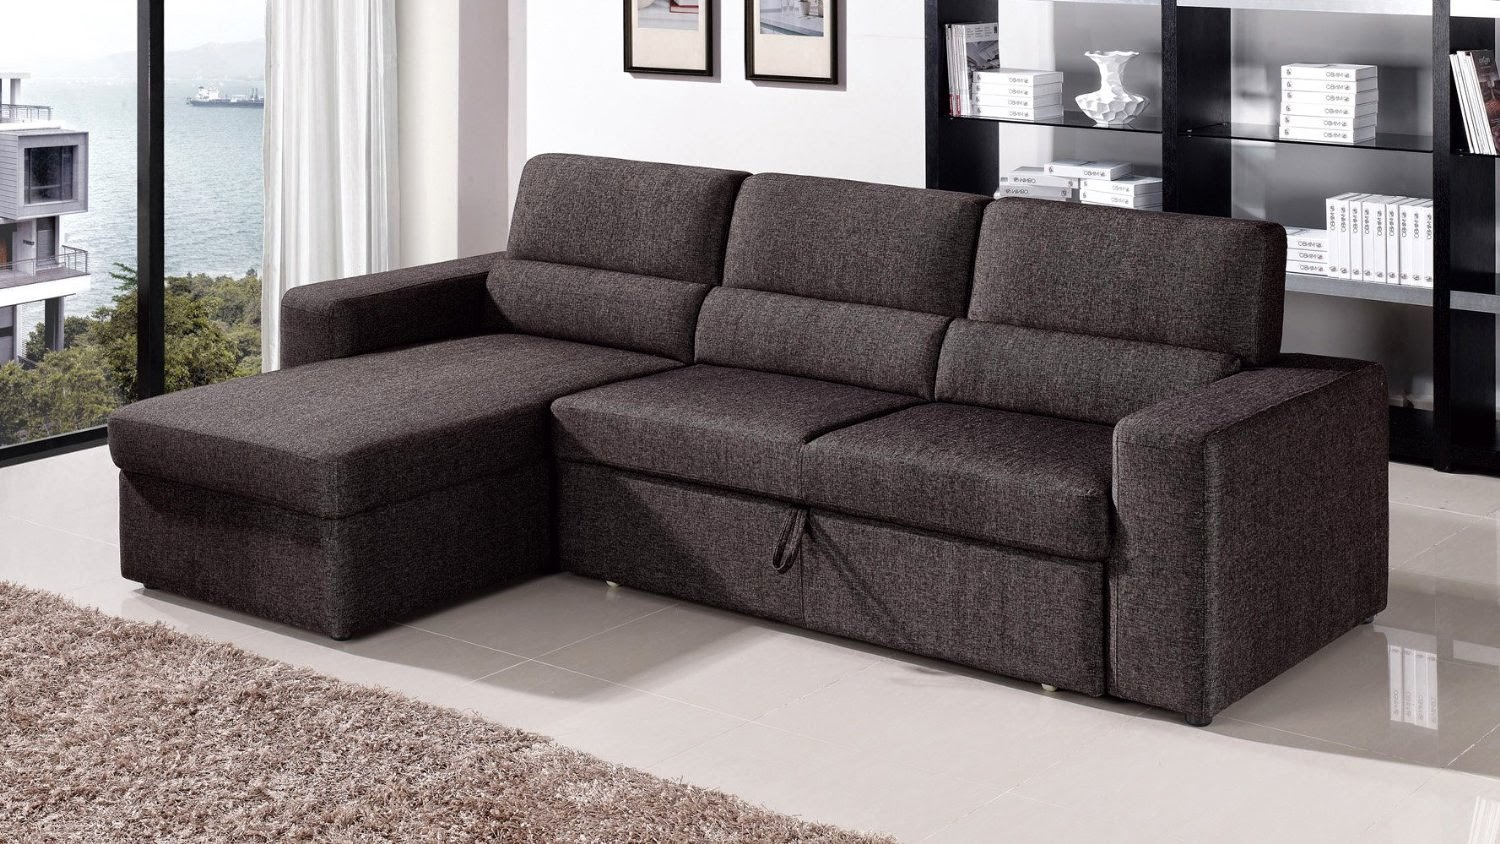 Pull out couch sectional couch with pull out bed for Pull out bed